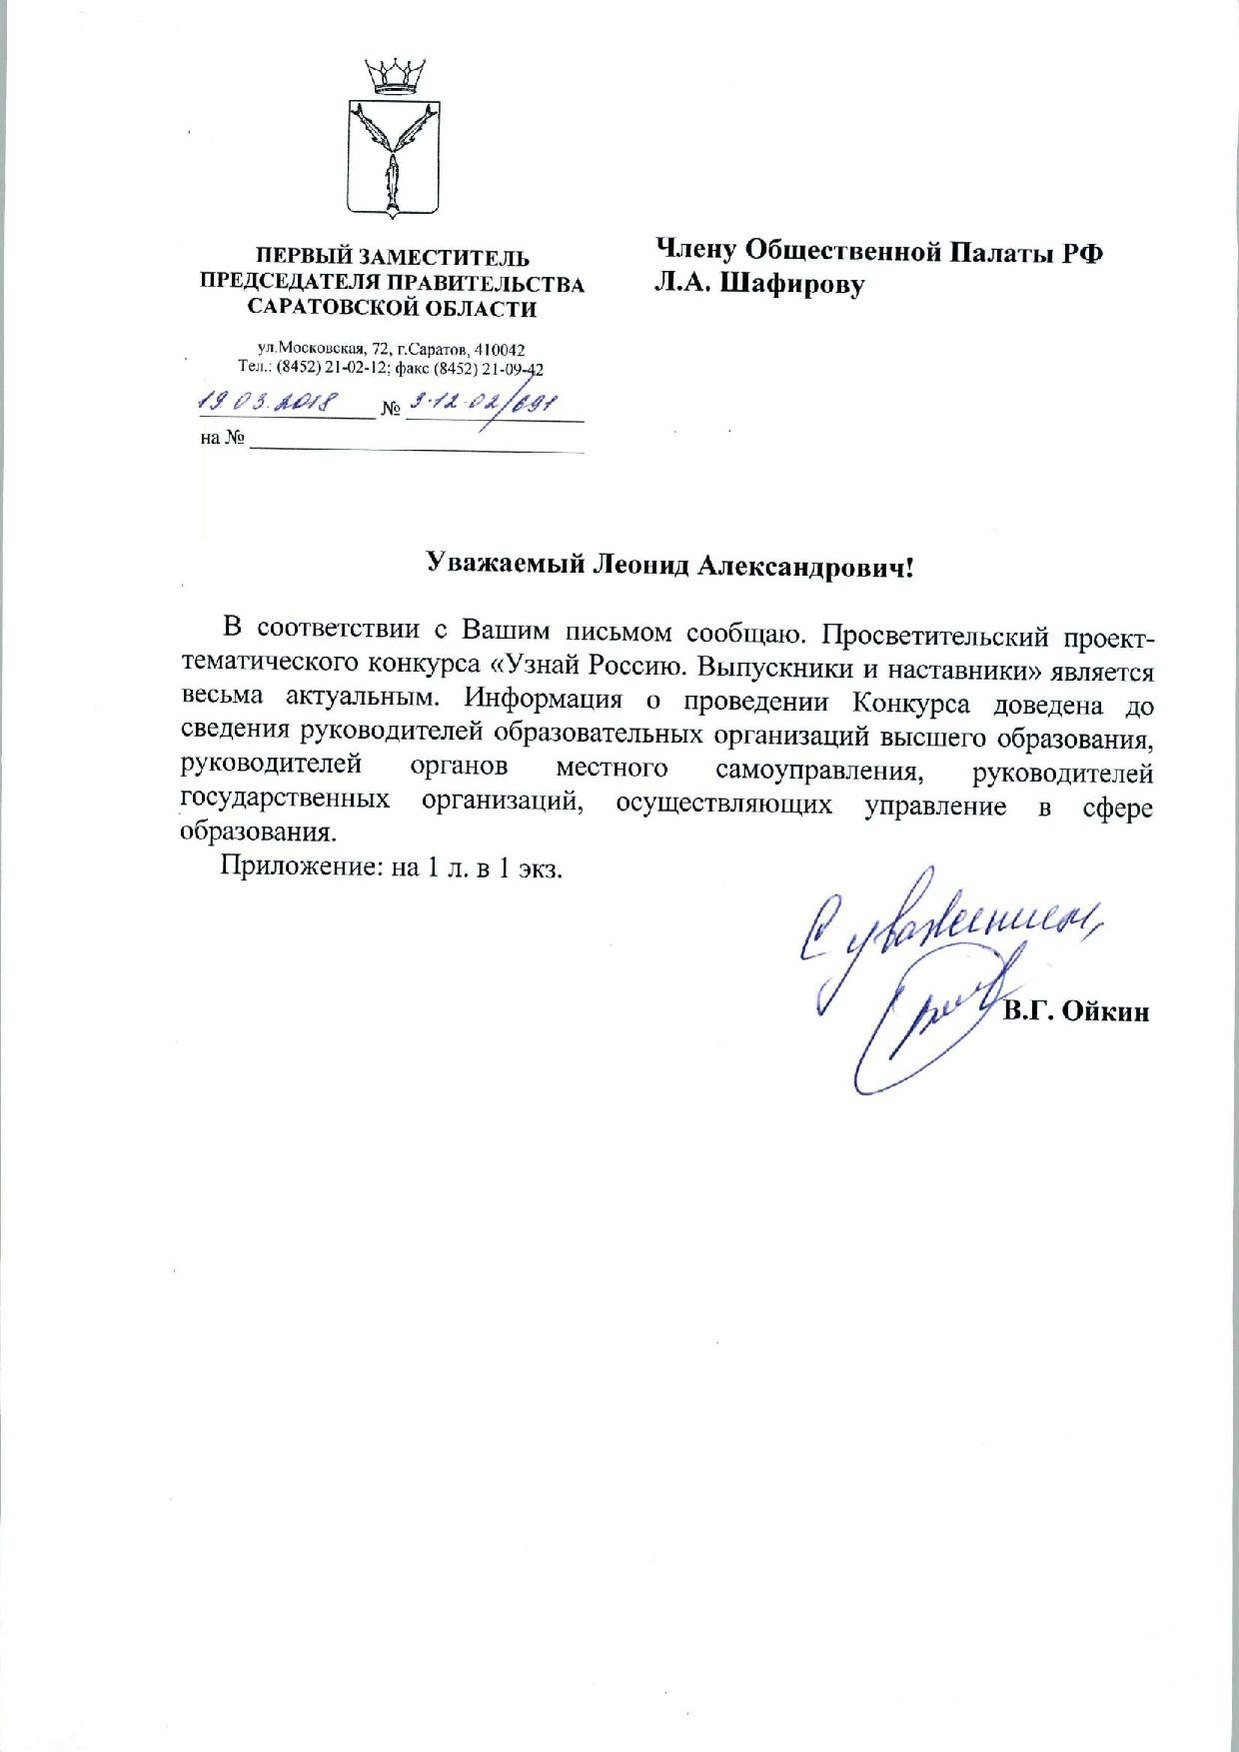 The governor of the Saratov region proposes to produce a non-existent iPhone 02/18/2016 85